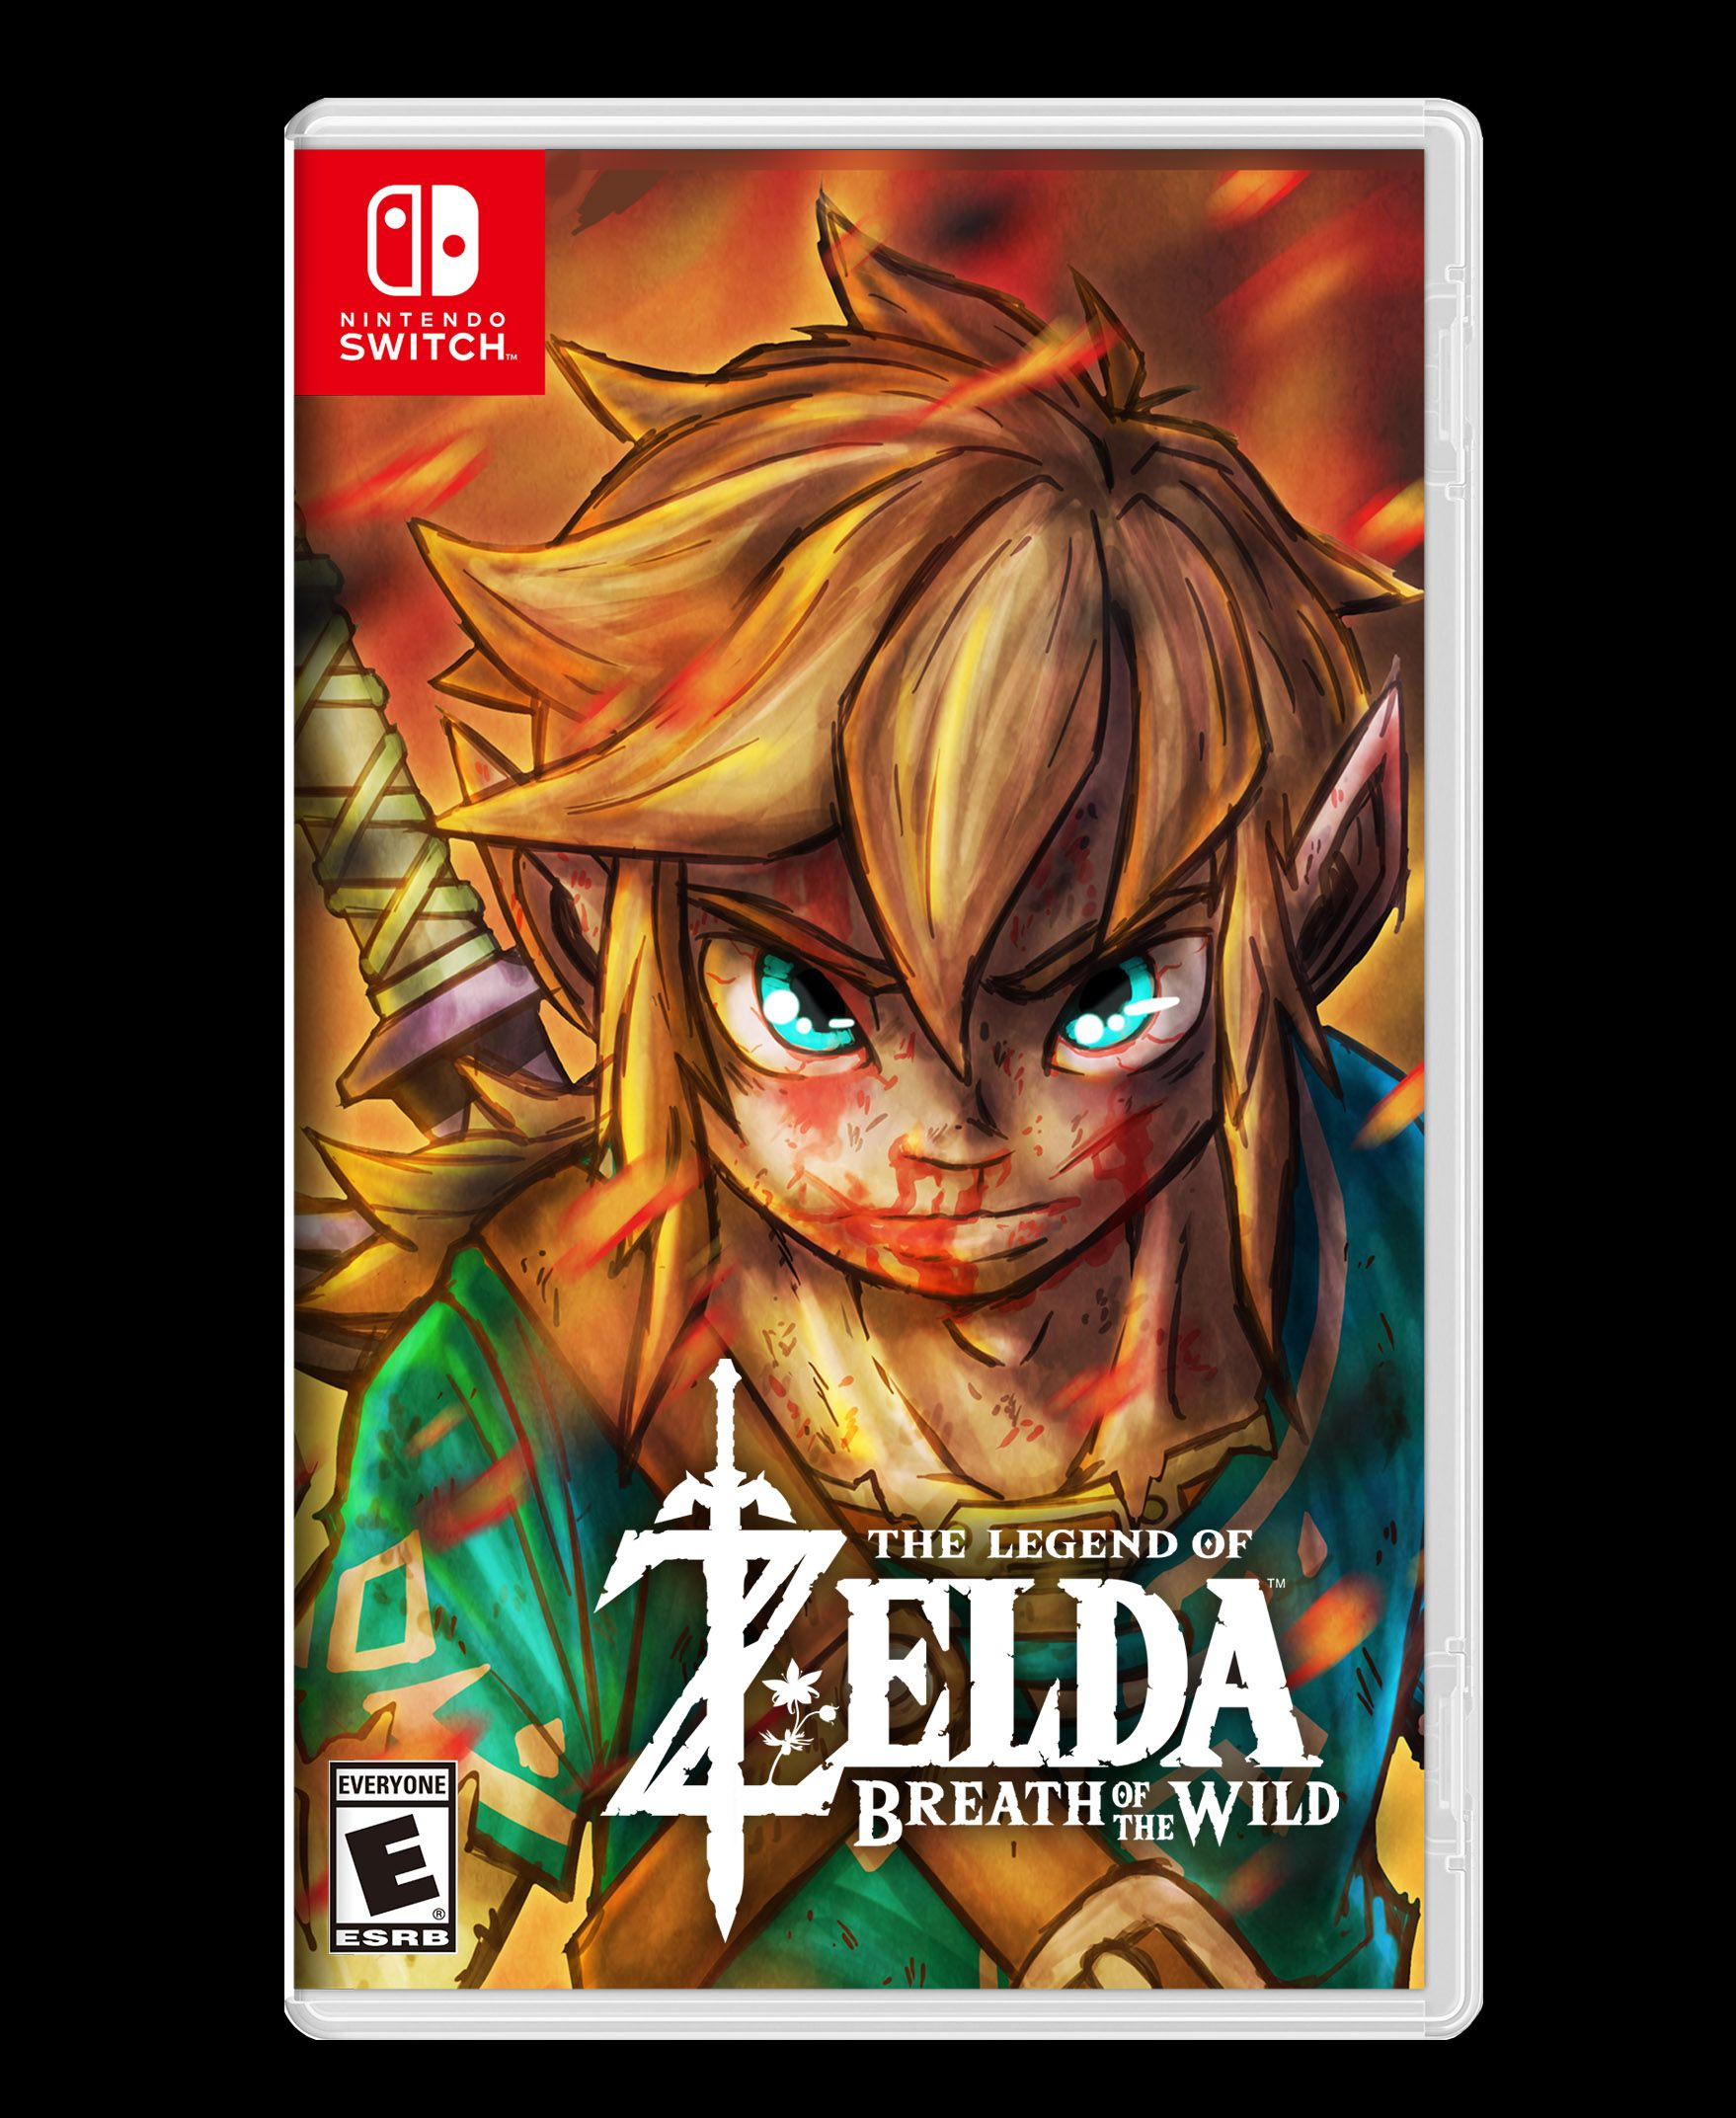 LEGEND OF ZELDA COVER2.jpg